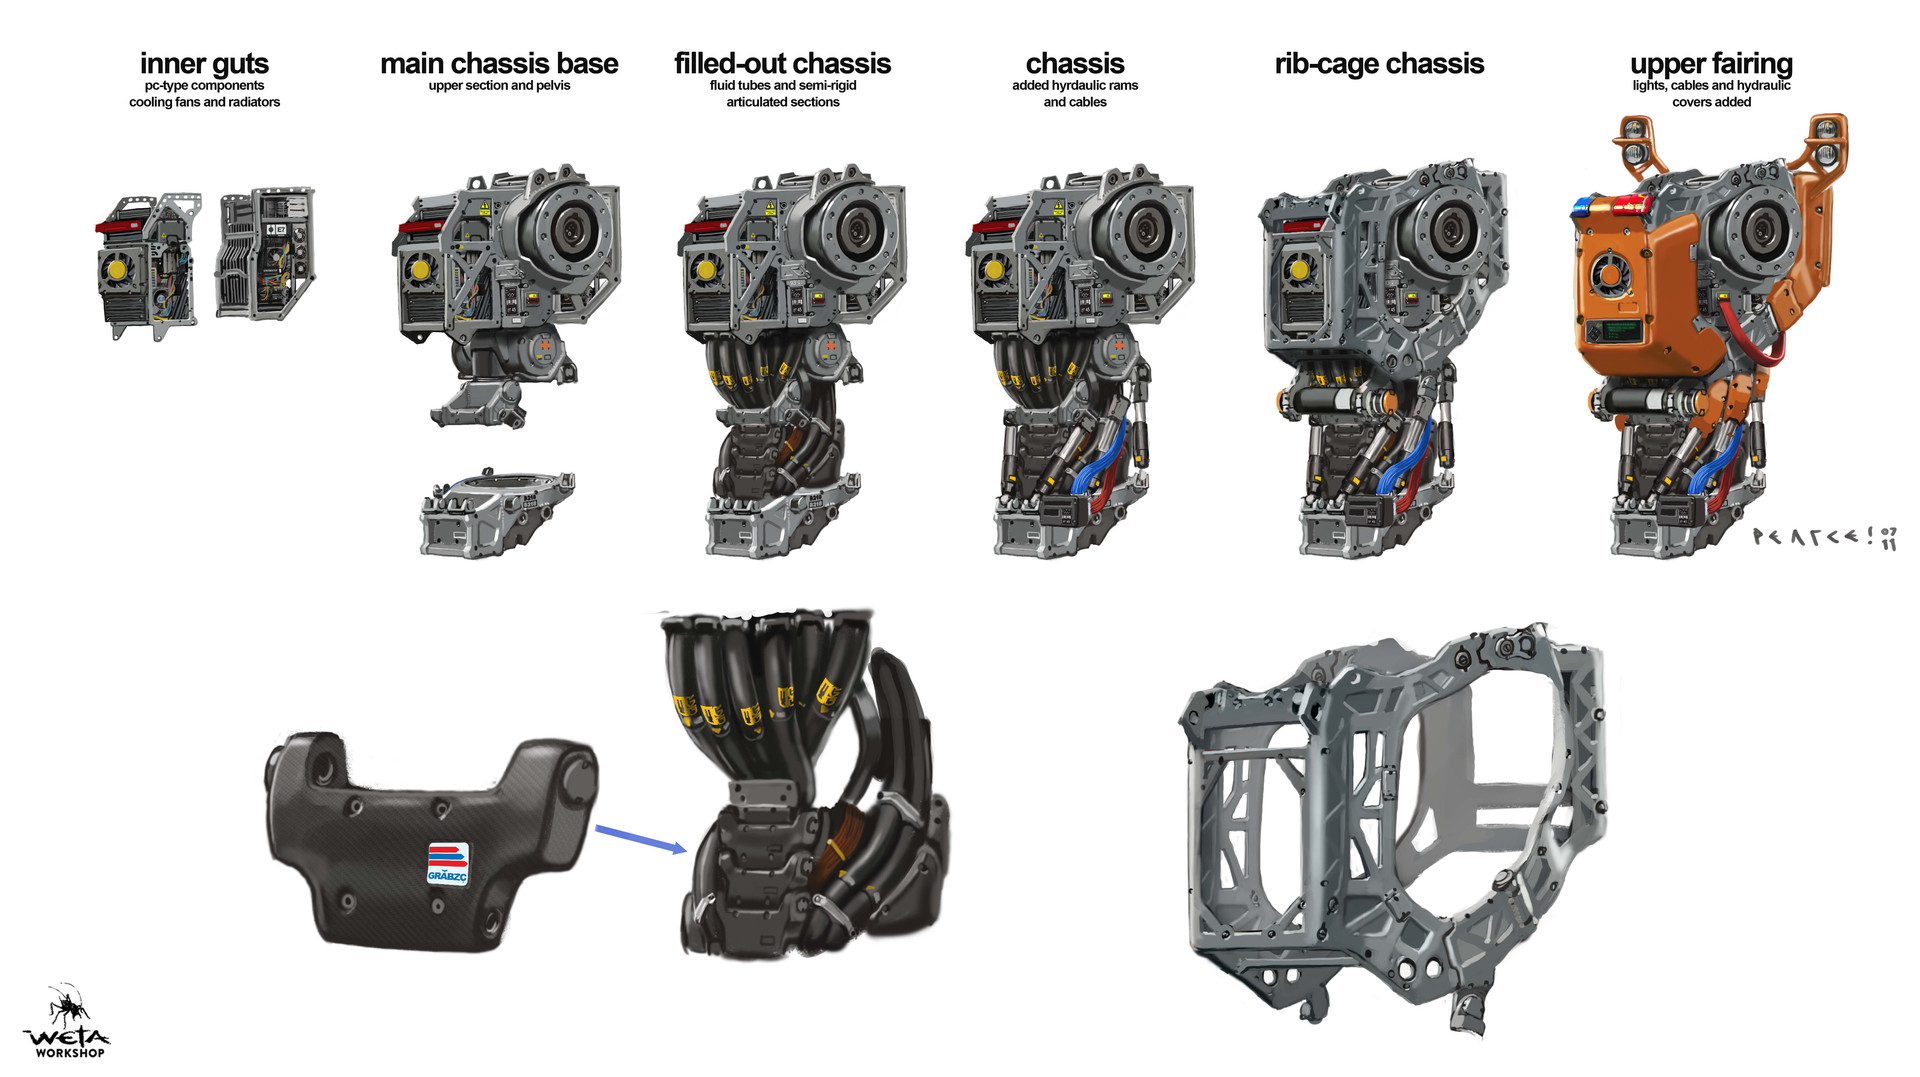 Weta workshop design studio 2035el droidtorsobreakdown21 7 11cp